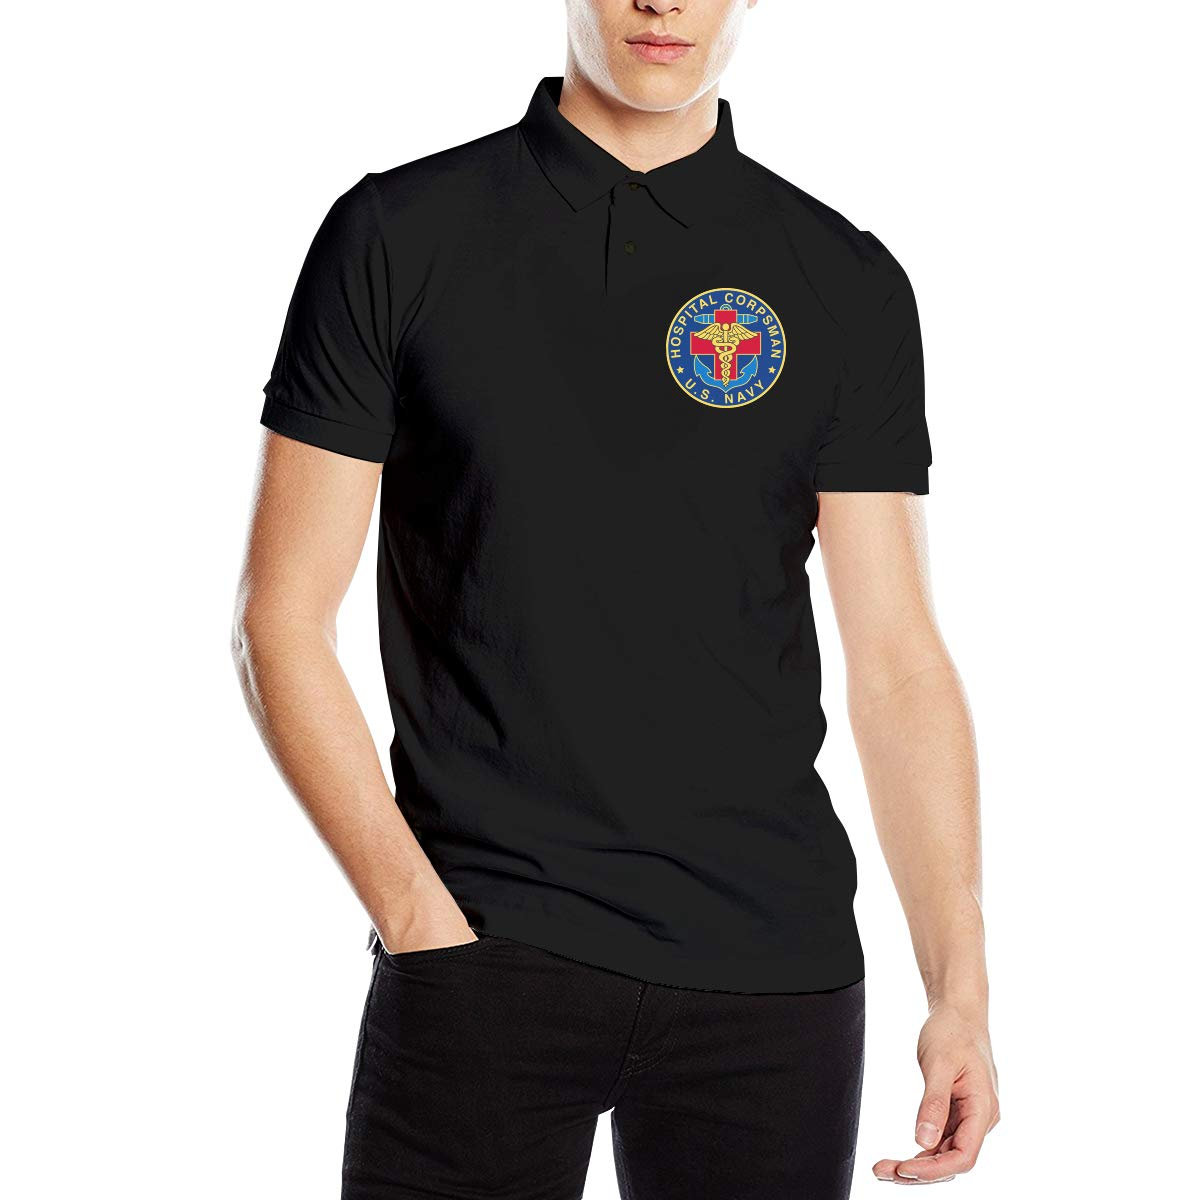 US Navy Hospital Corpsman Men Regular Fit Cotton Polo Shirts Classic Short Sleeve Polo Black